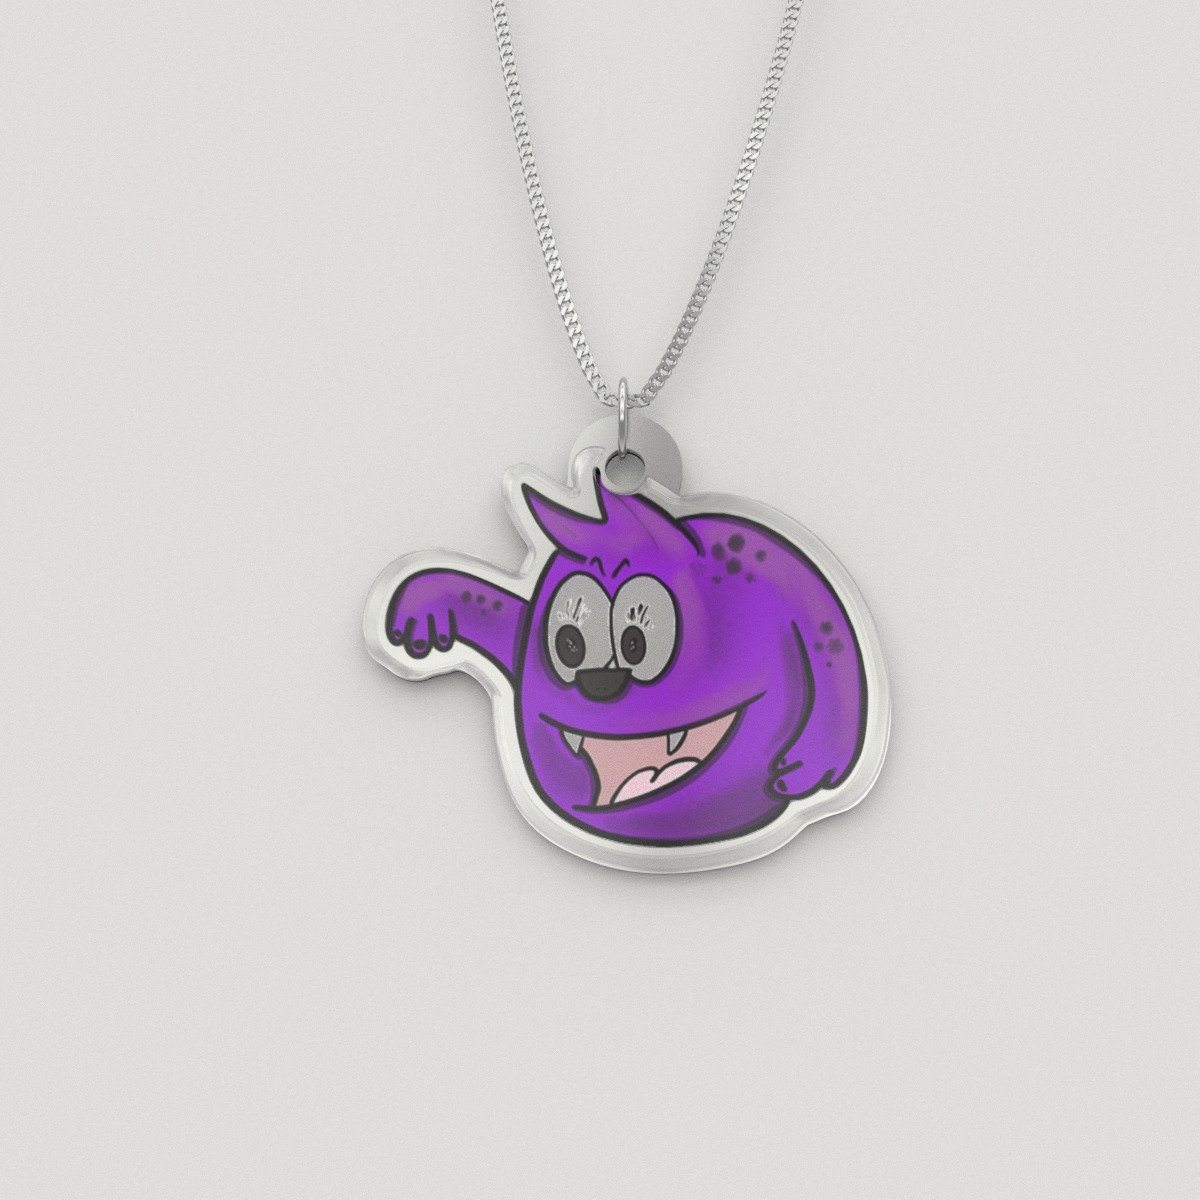 Penny the Chronic Pain Monster Silver Necklace - The Unchargeables